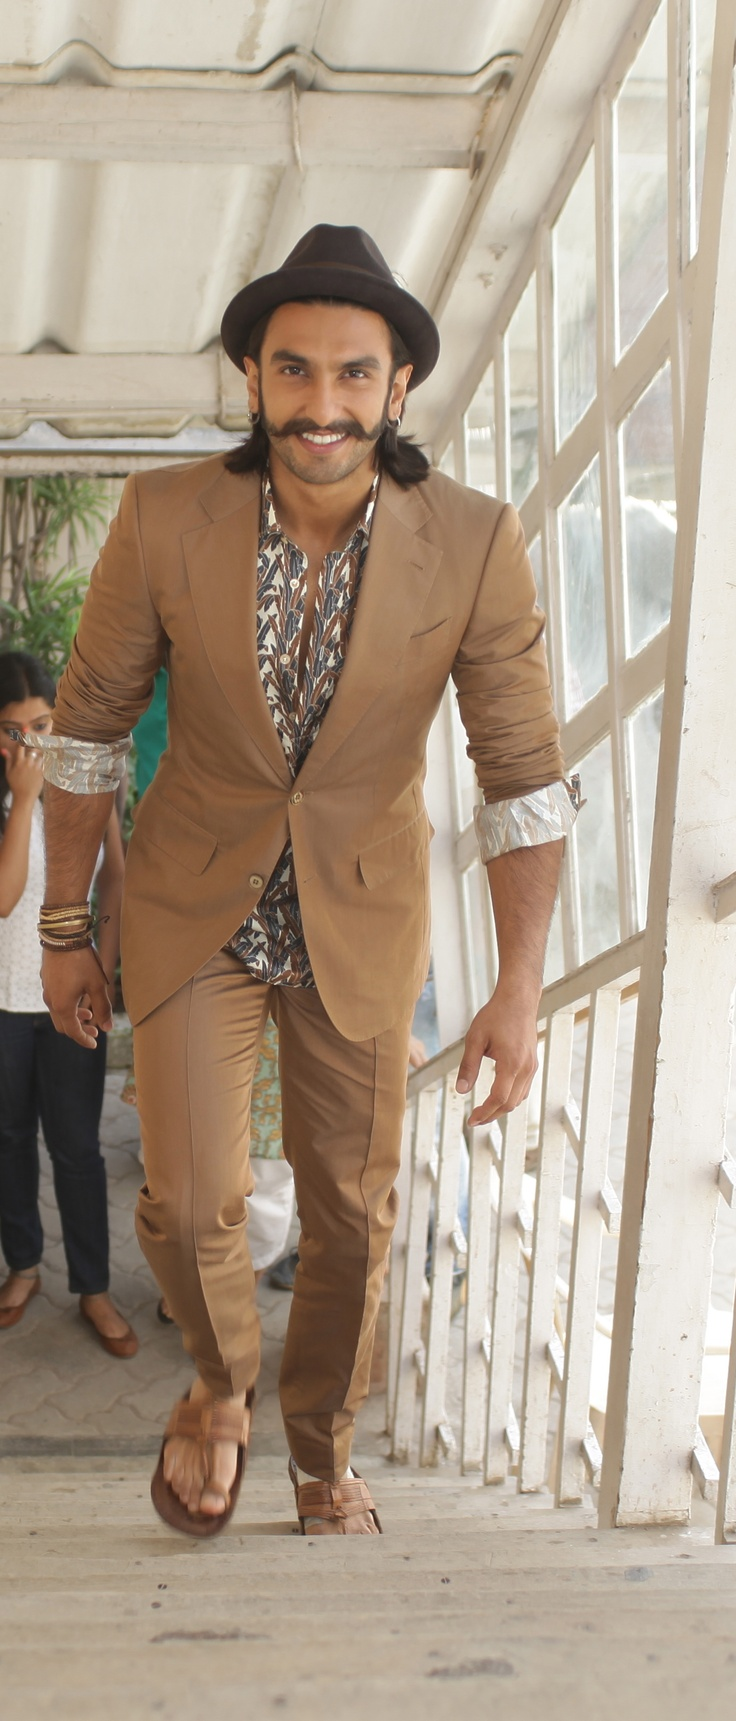 Ranveer Singh arrives Love Japals with a suit - nice style